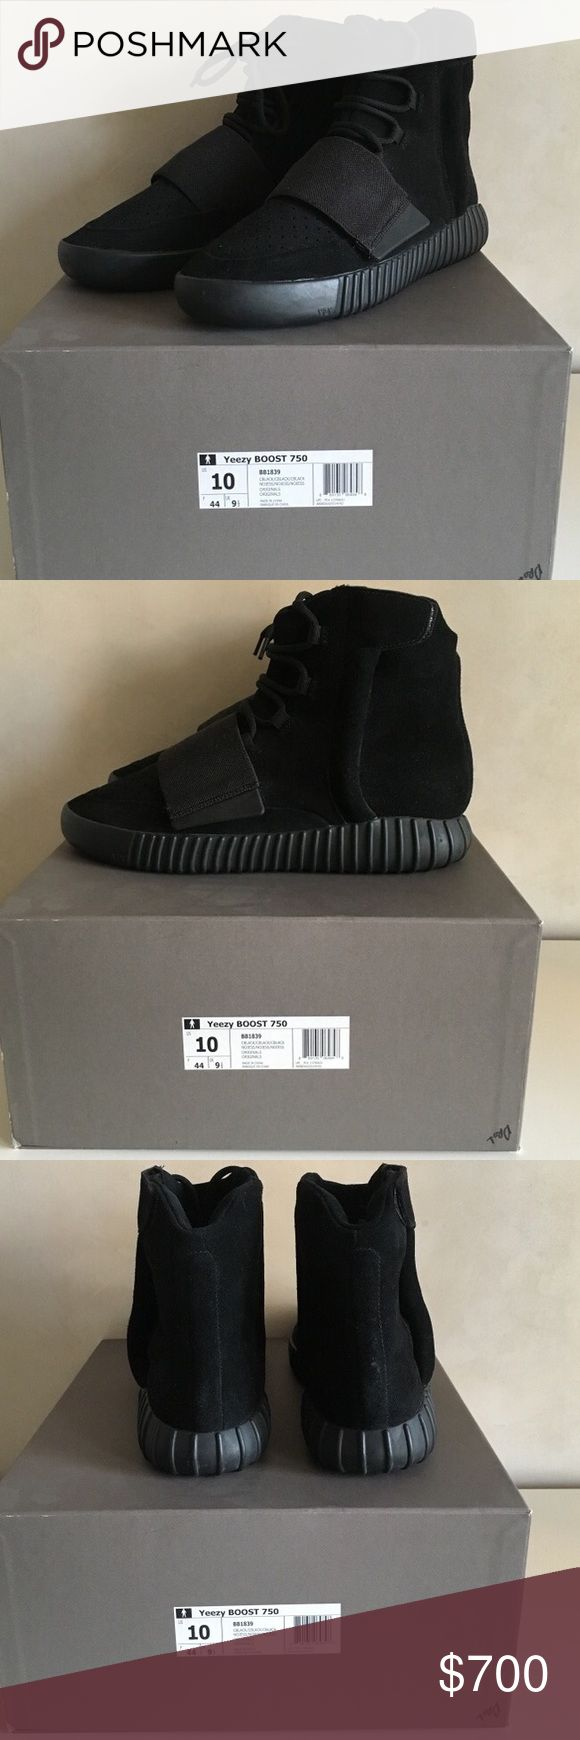 Pirate Black Yeezy 750 Boost 10/10 condition DS Yeezy Shoes Sneakers